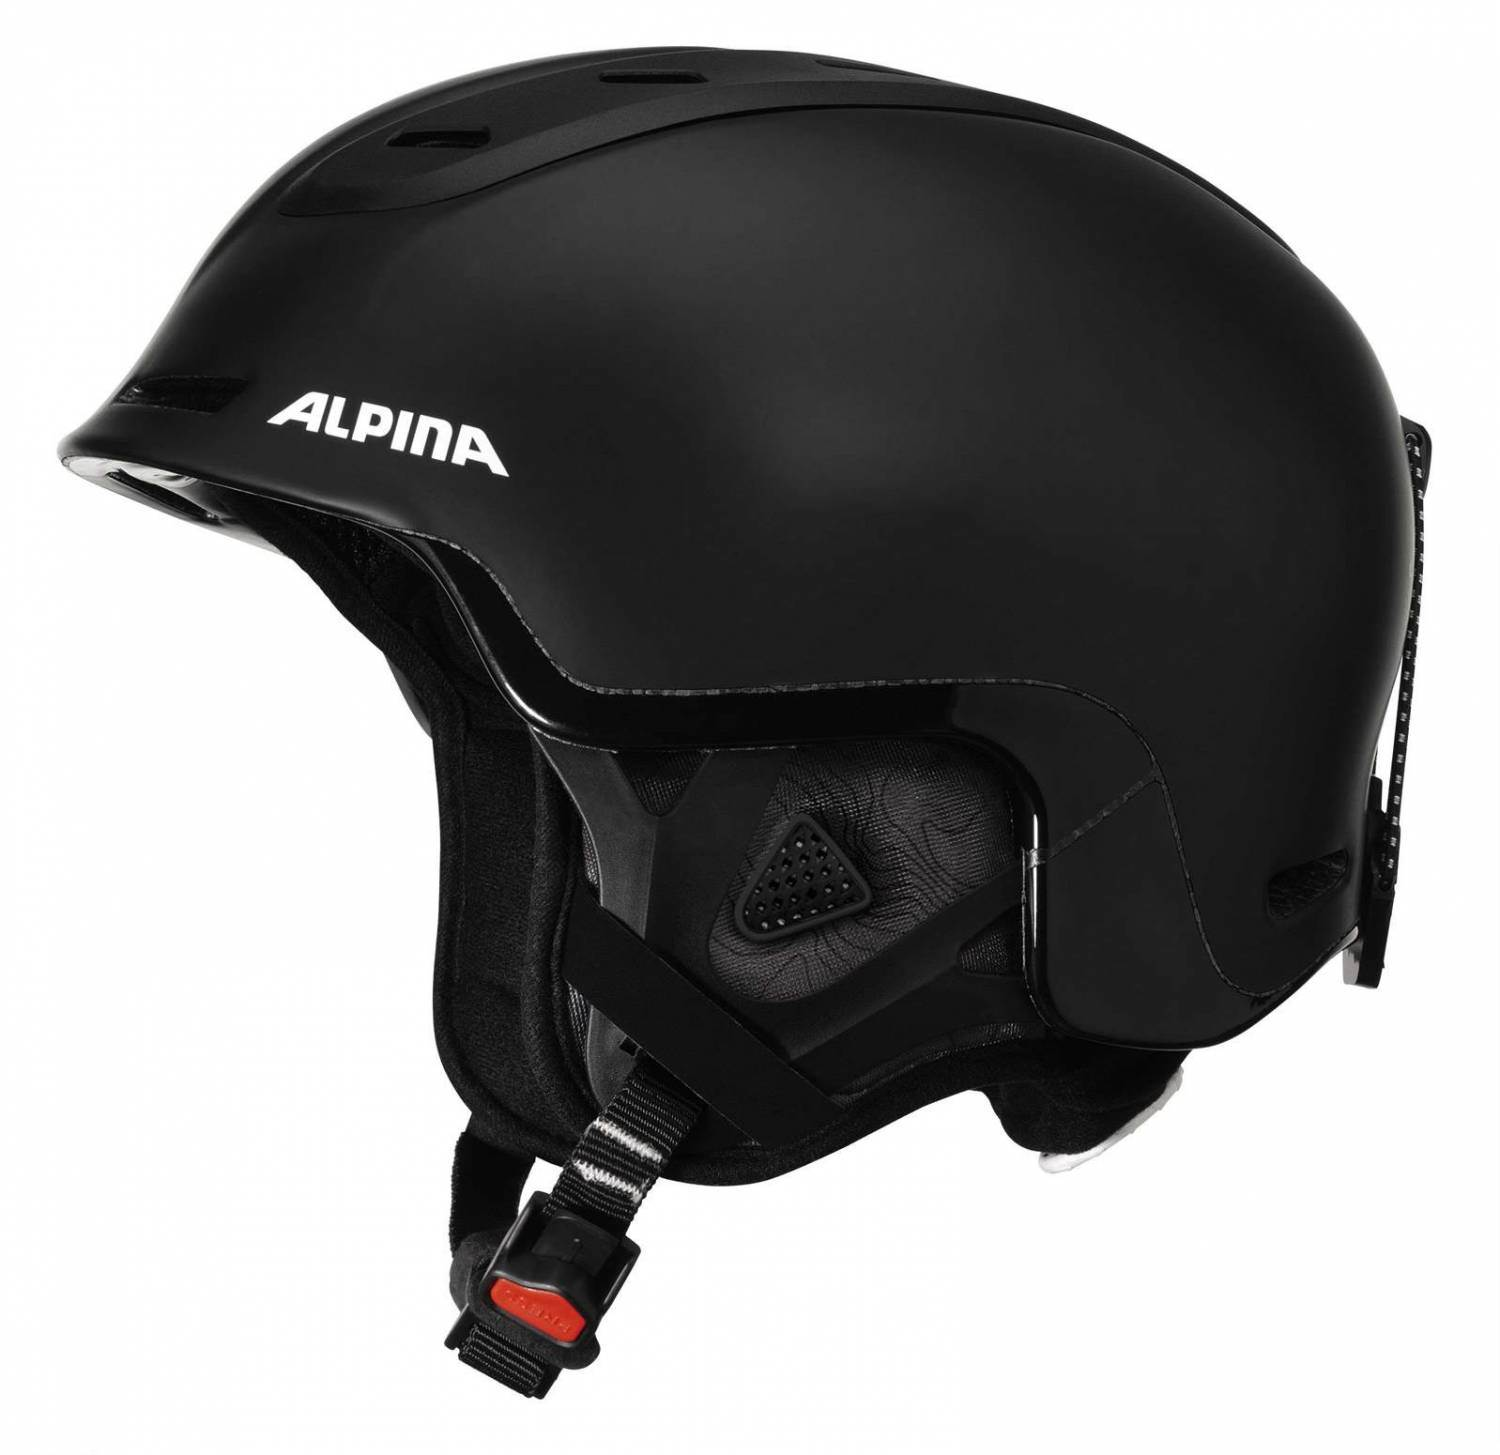 alpina spine freeride skihelm gr e 58 61 cm 33 grey black. Black Bedroom Furniture Sets. Home Design Ideas